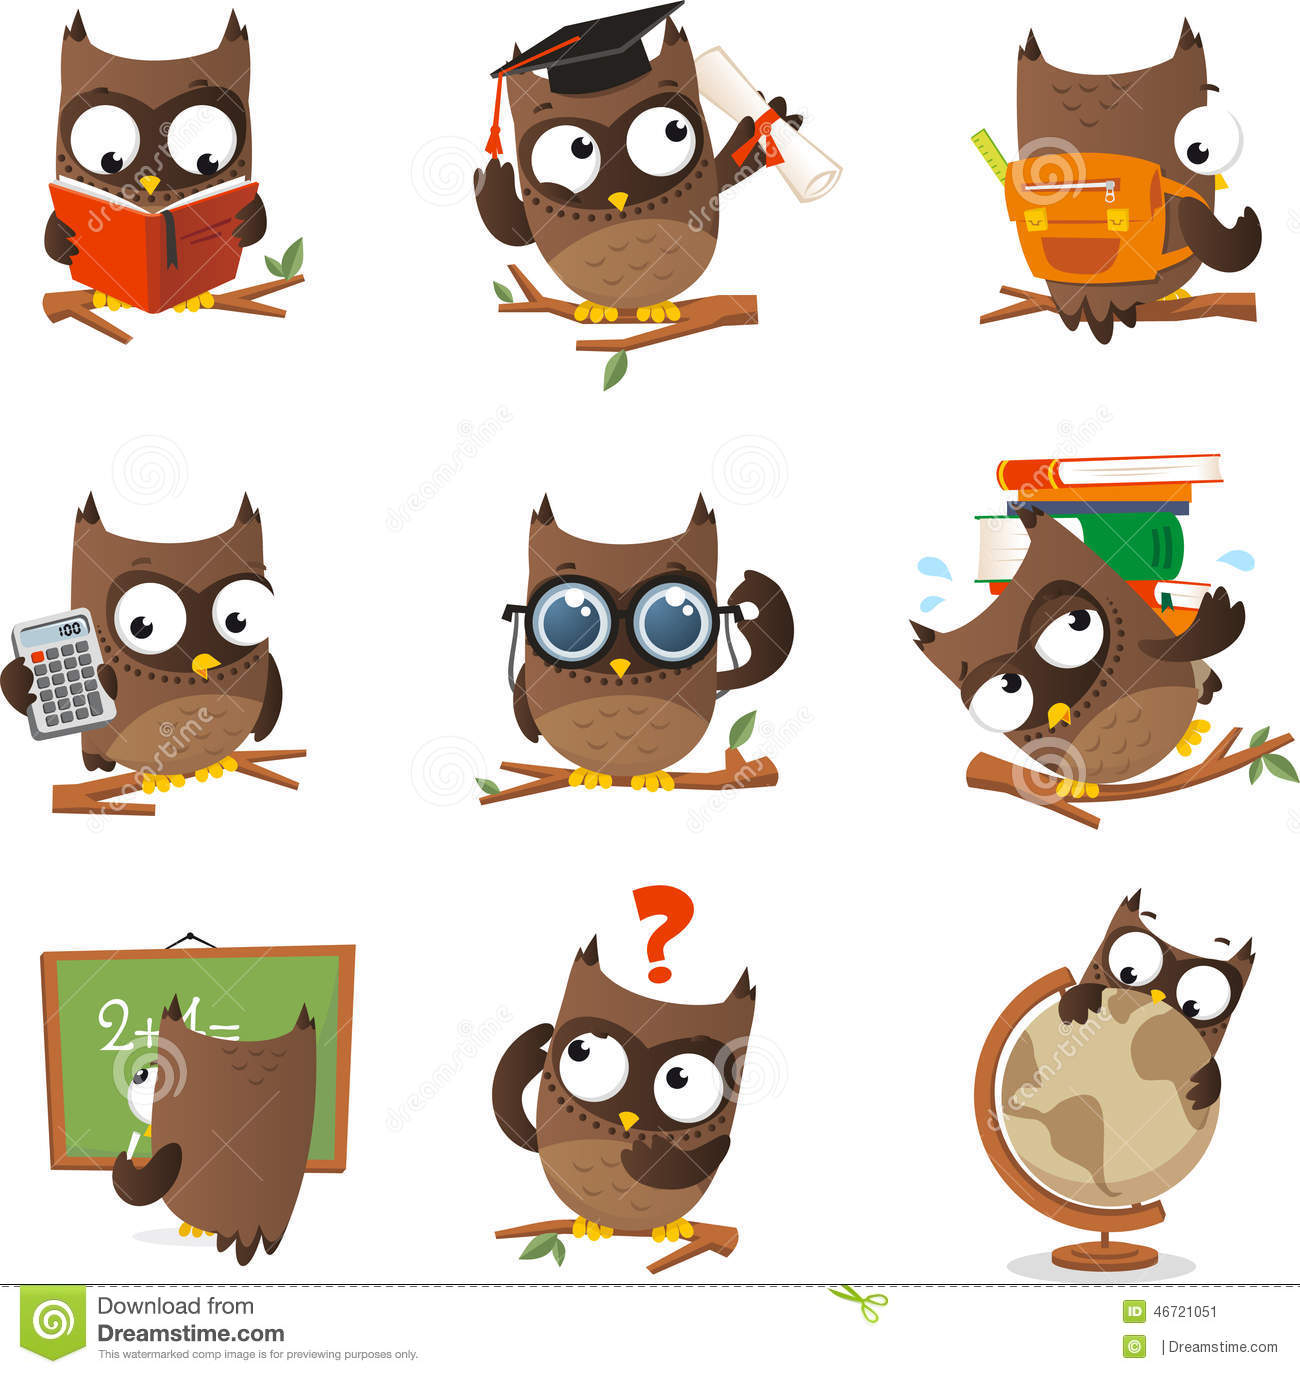 Wise Owl Cartoon Set Studying Collection With Nine Owls In Different Situations